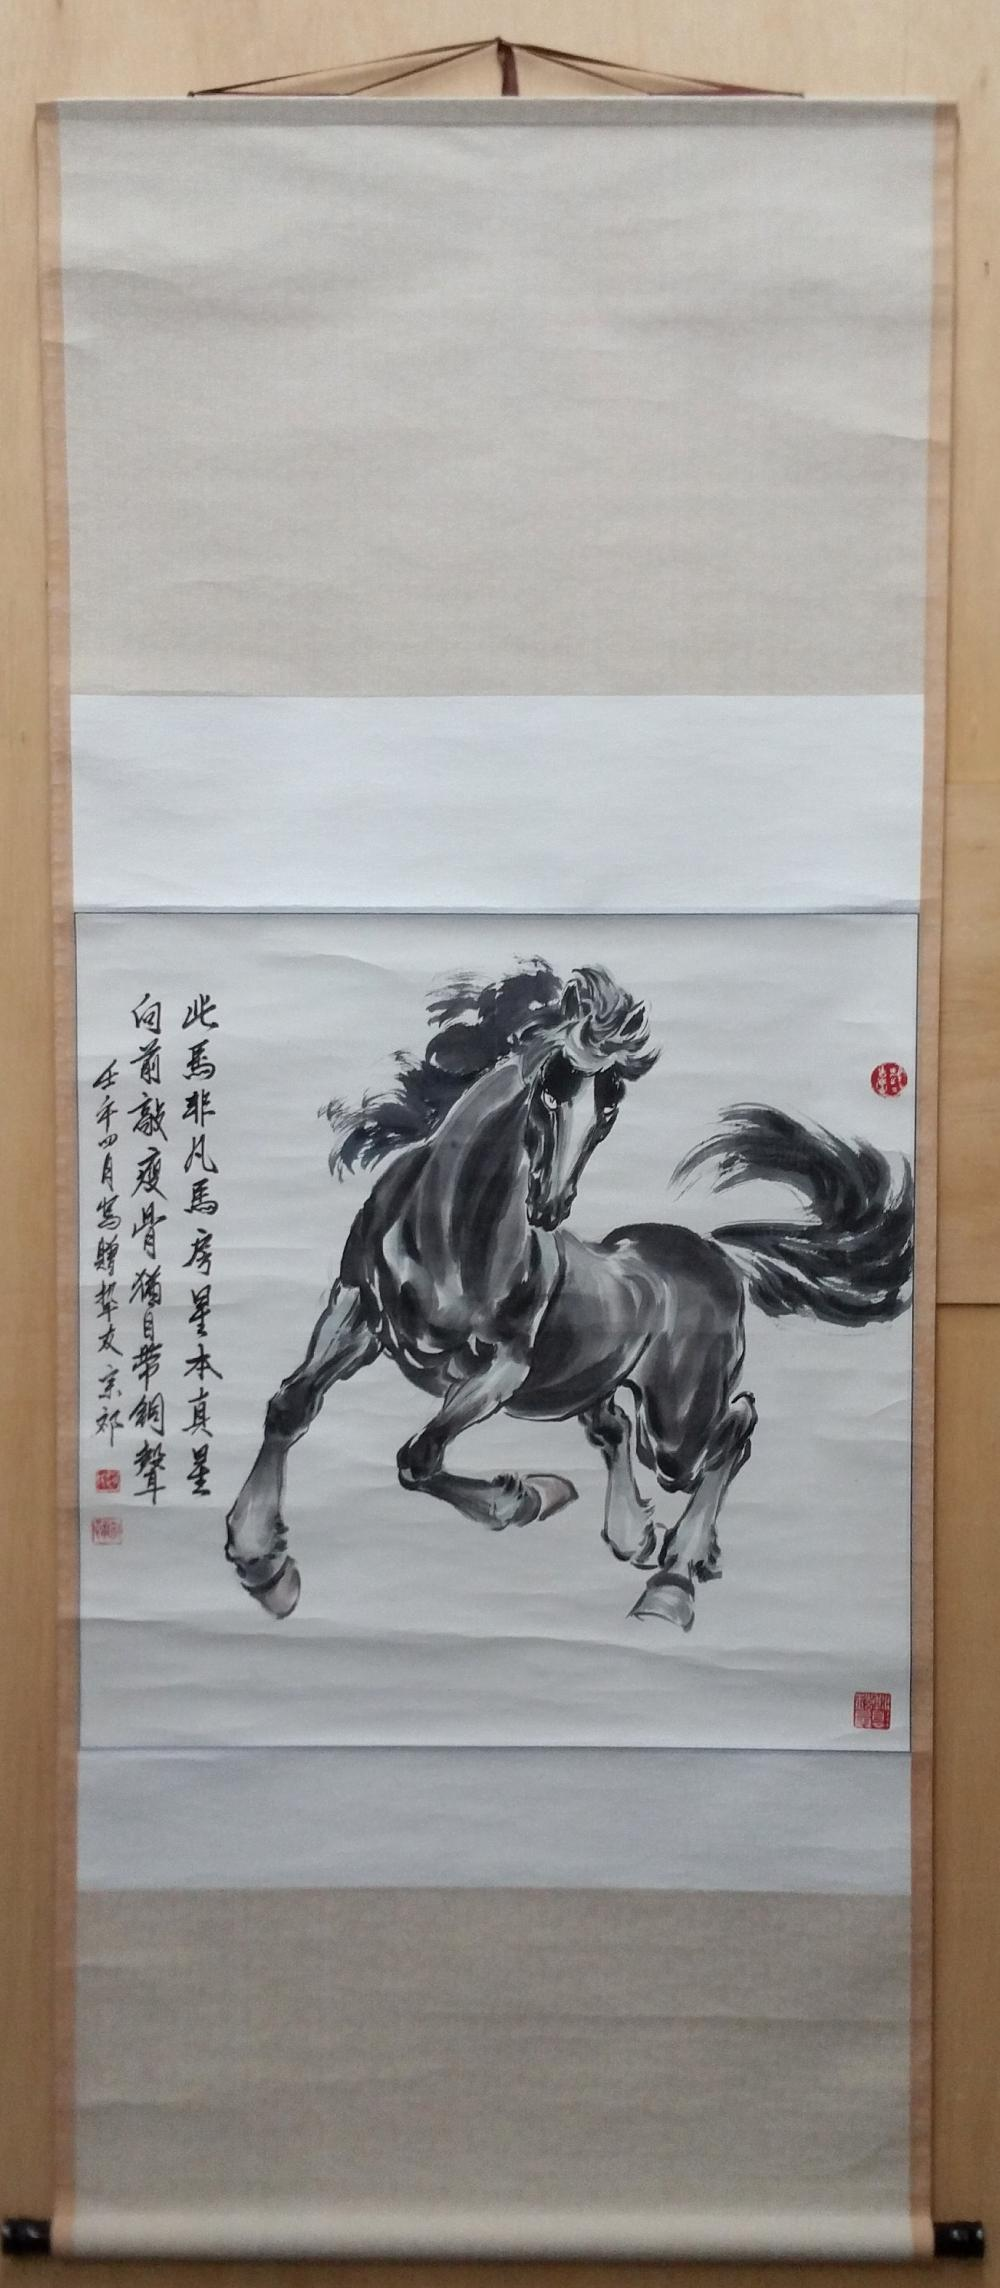 Yao Di-Xiong Chinese Scroll Painting Equestrian Horse Vintage with Book